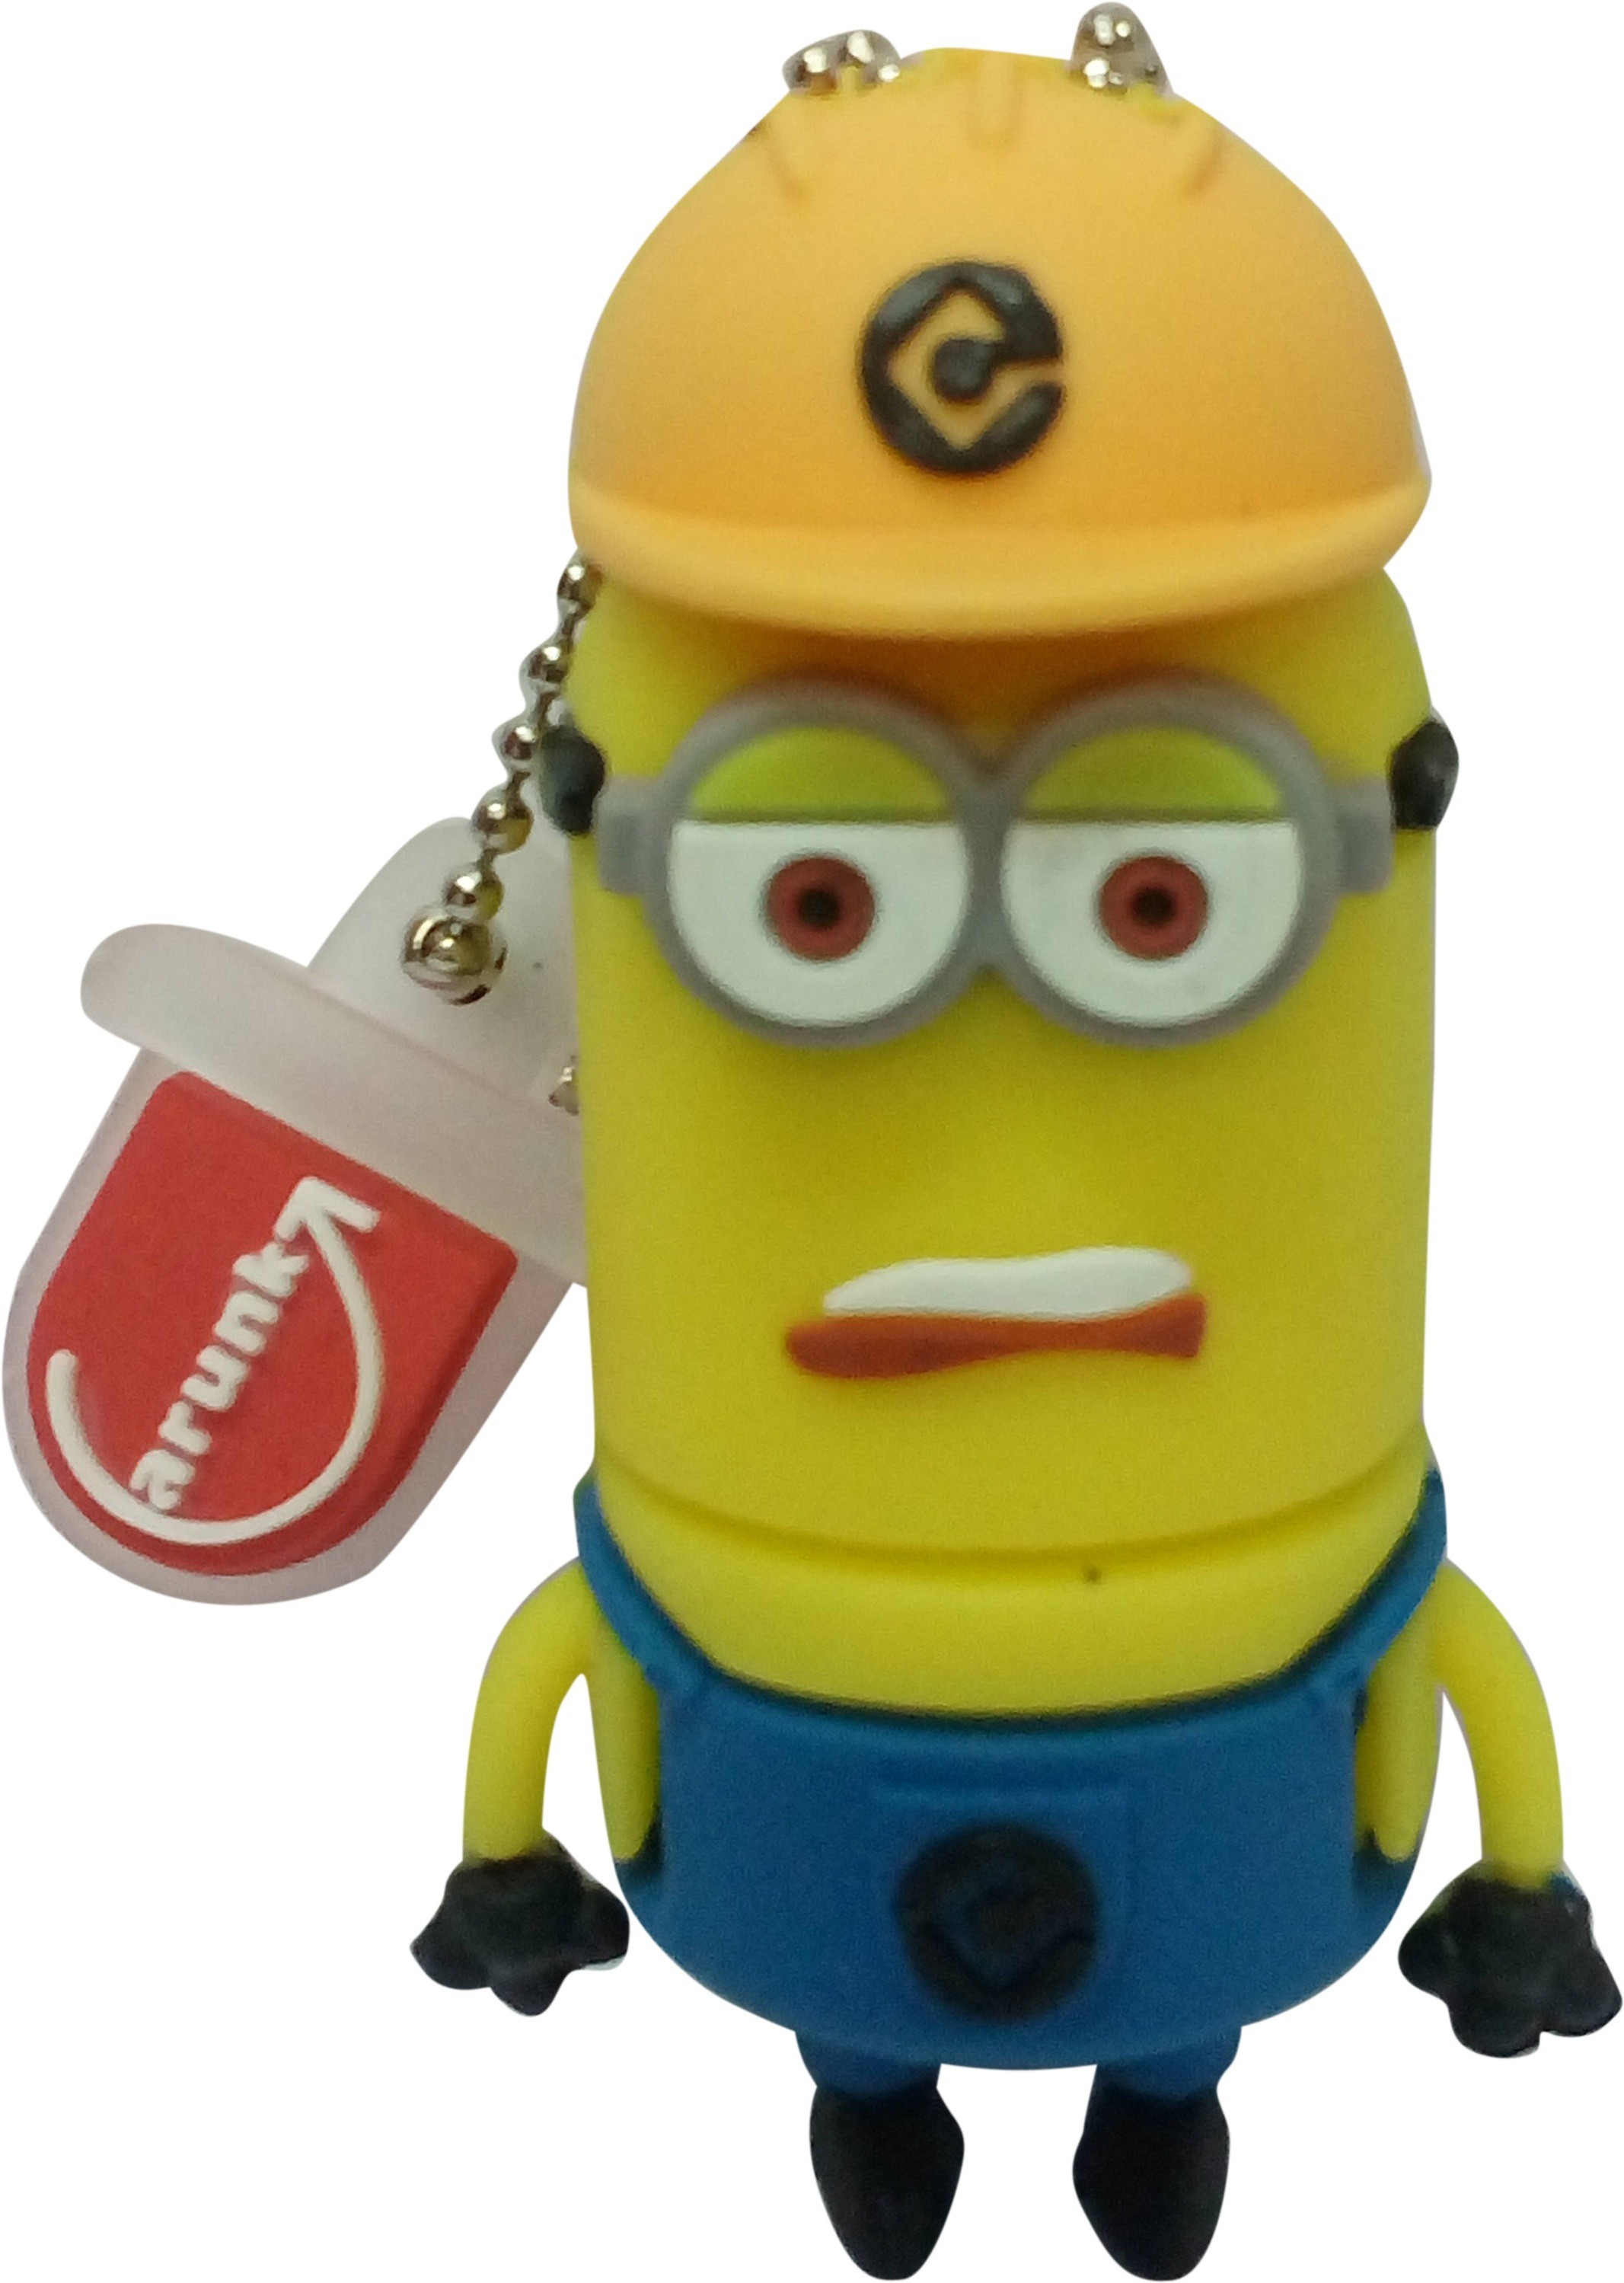 View Vibes P-051 8 GB Pen Drive(Yellow) Price Online(Vibes)